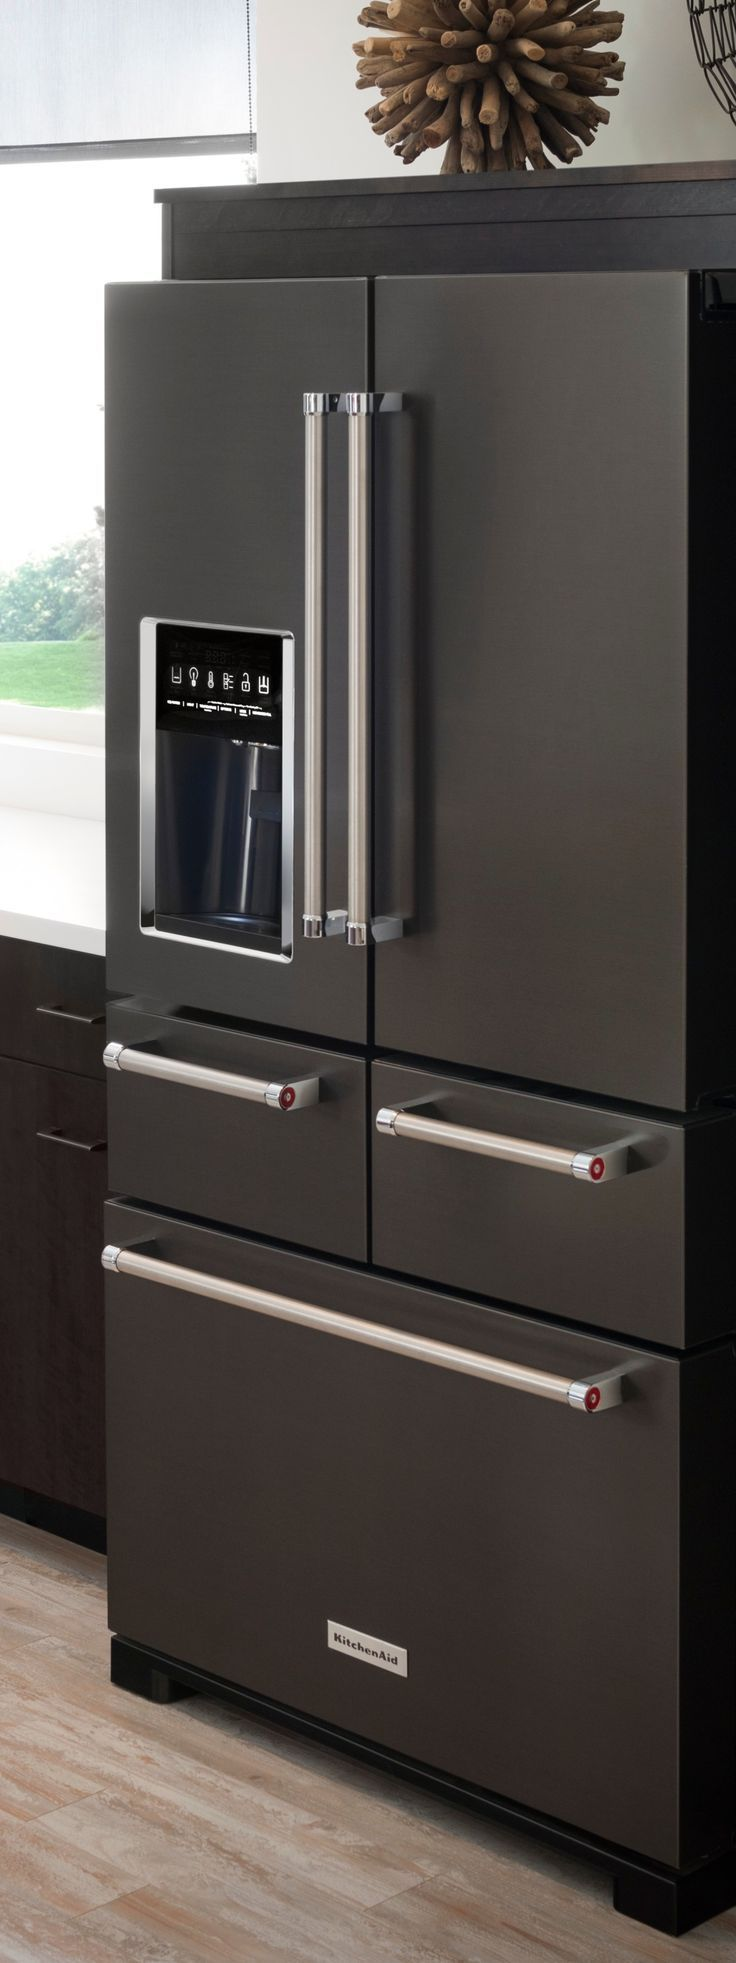 Black stainless steel appliances give your kitchen a bold